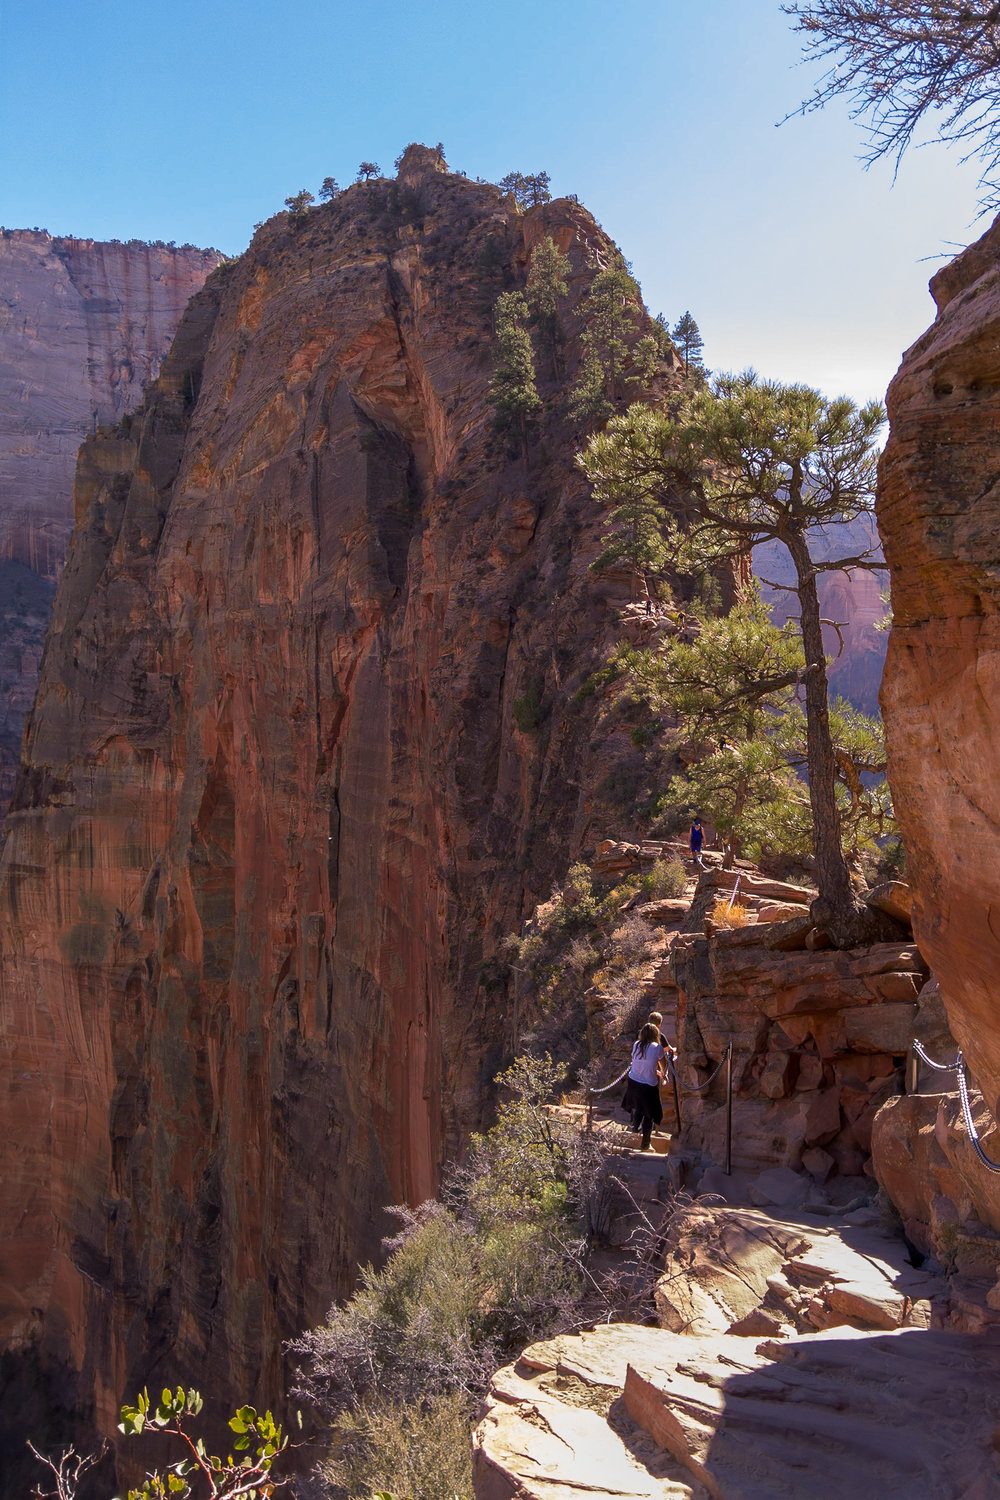 Light L16 at 28mm - Angels Landing Trail